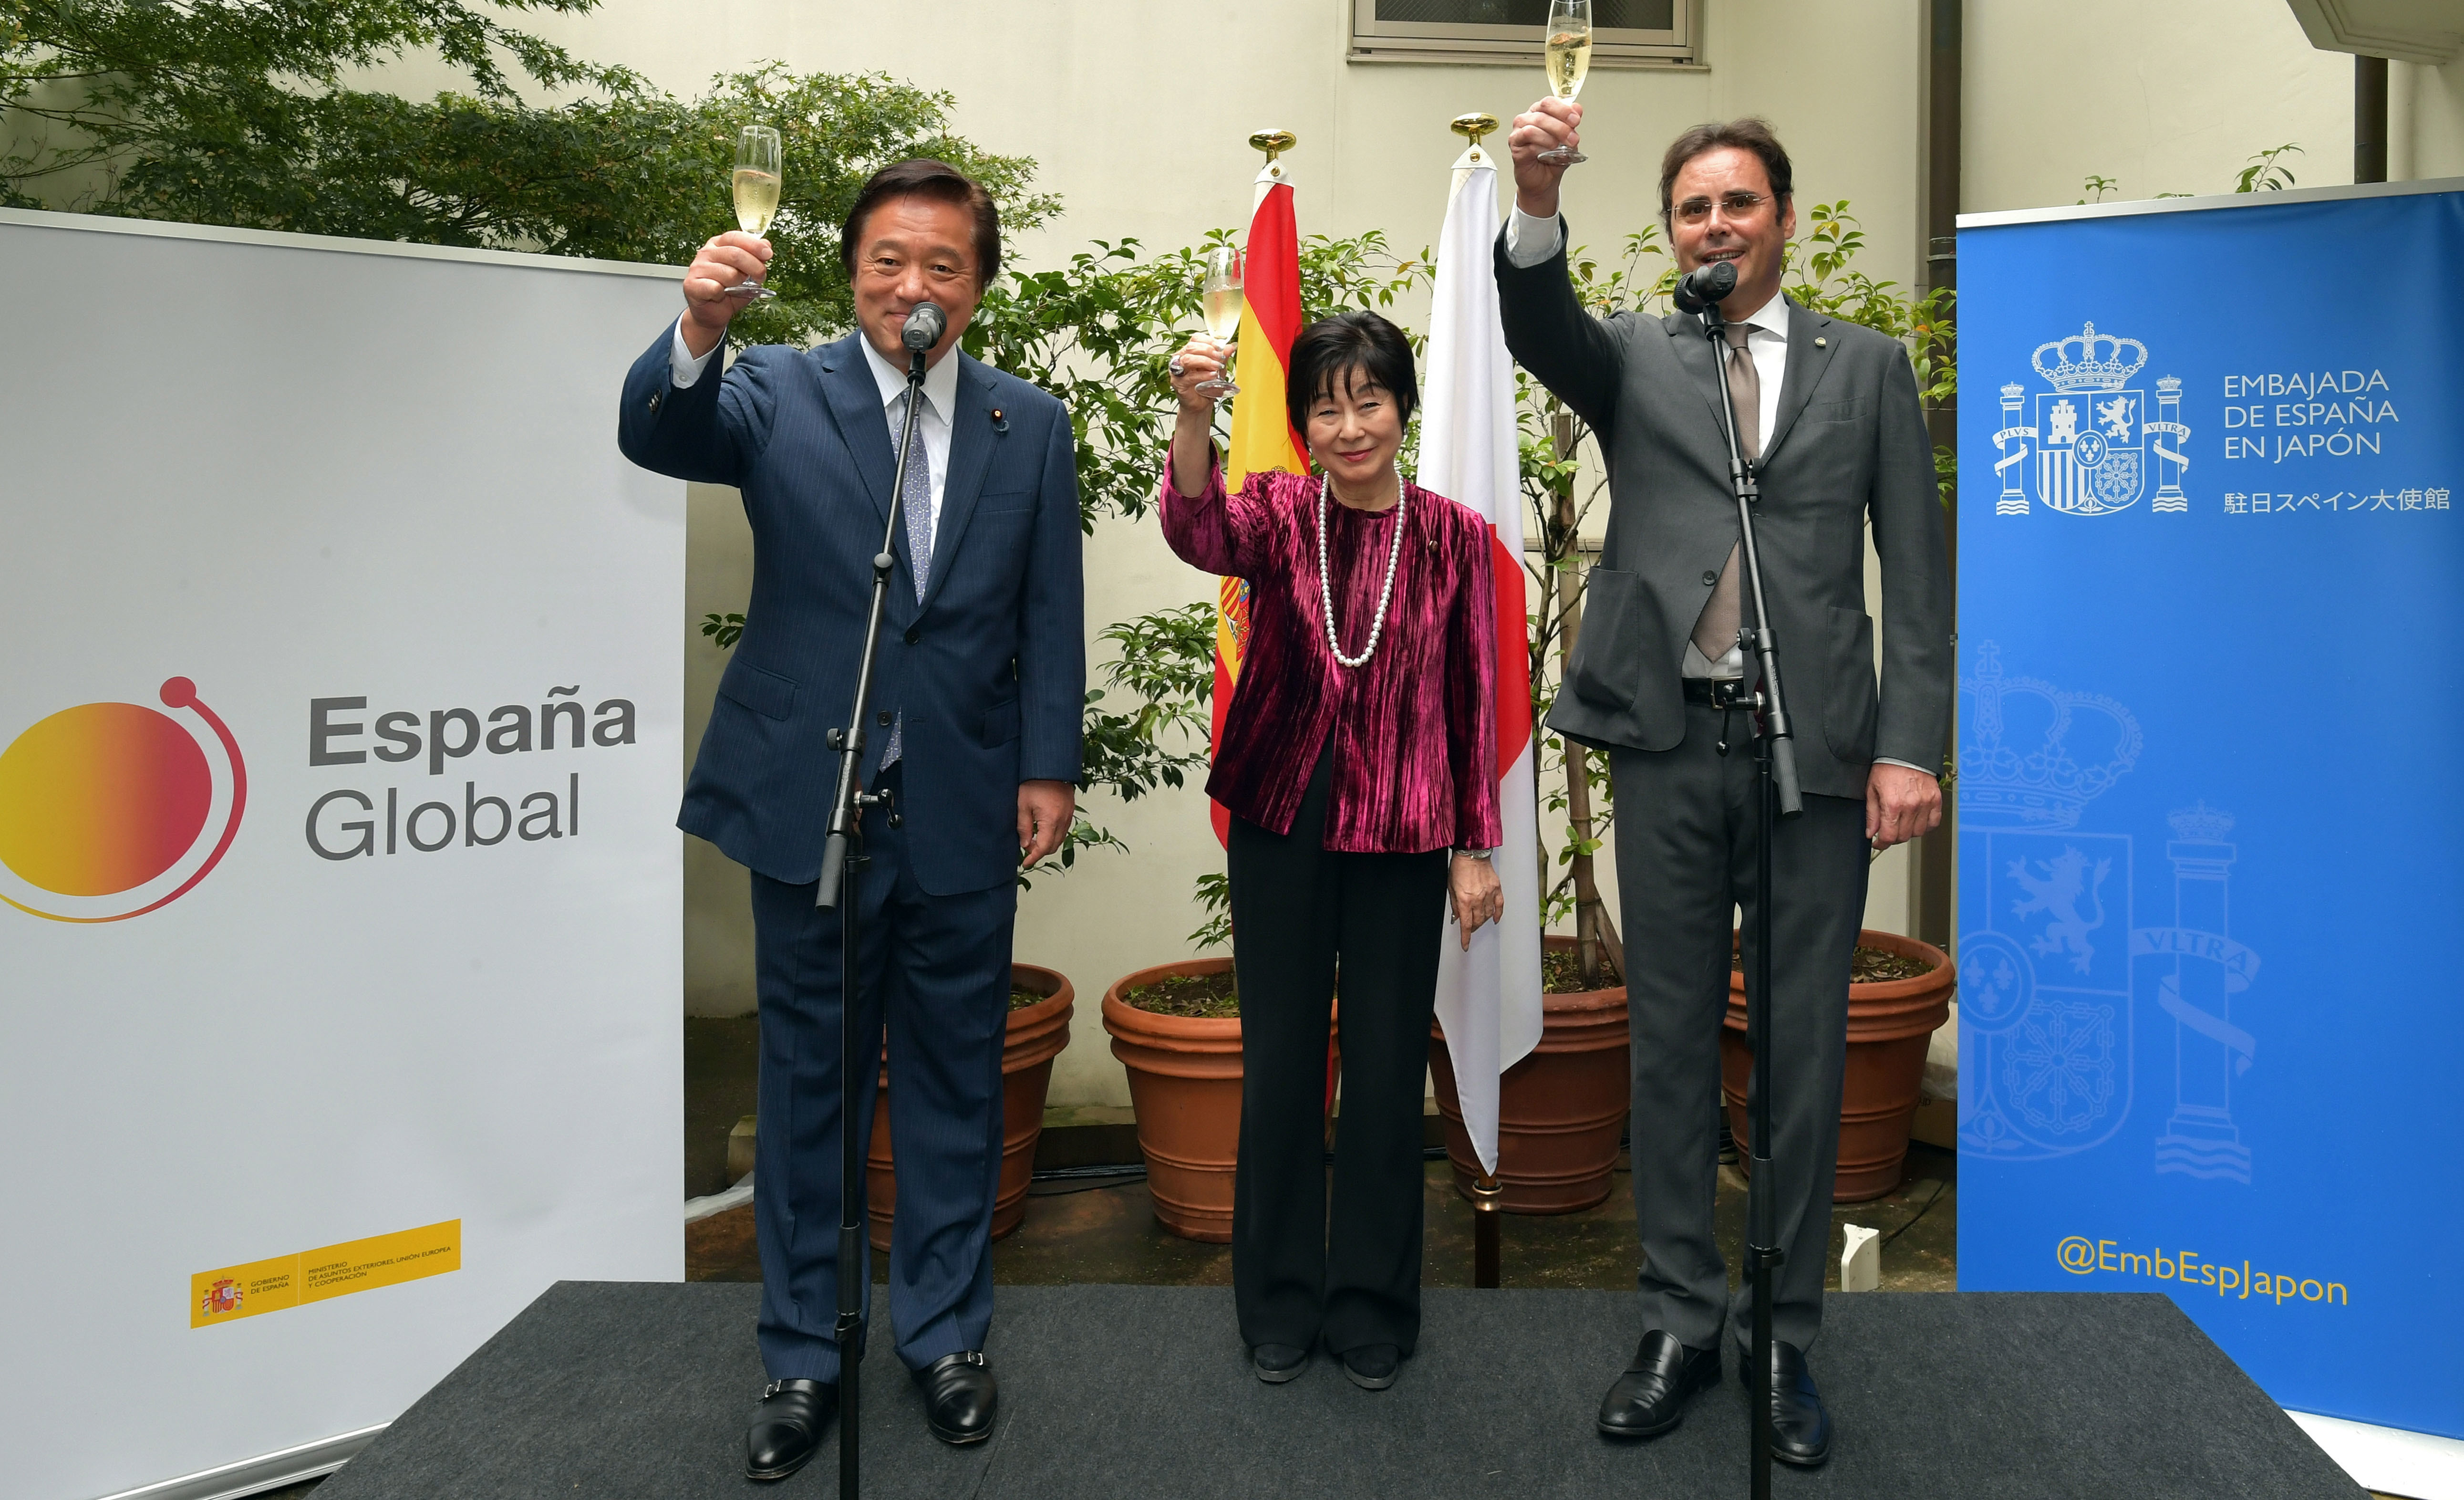 Spain Ambassador Jorge Toledo Albinana (right) raises a toast with State Minister for Foreign Affairs Kenji Wakamiya (left) and President of the House of Councillors Akiko Santo (center) during a reception celebrating Spain's National Day at the embassy on Oct. 11.      yoshiaki miura